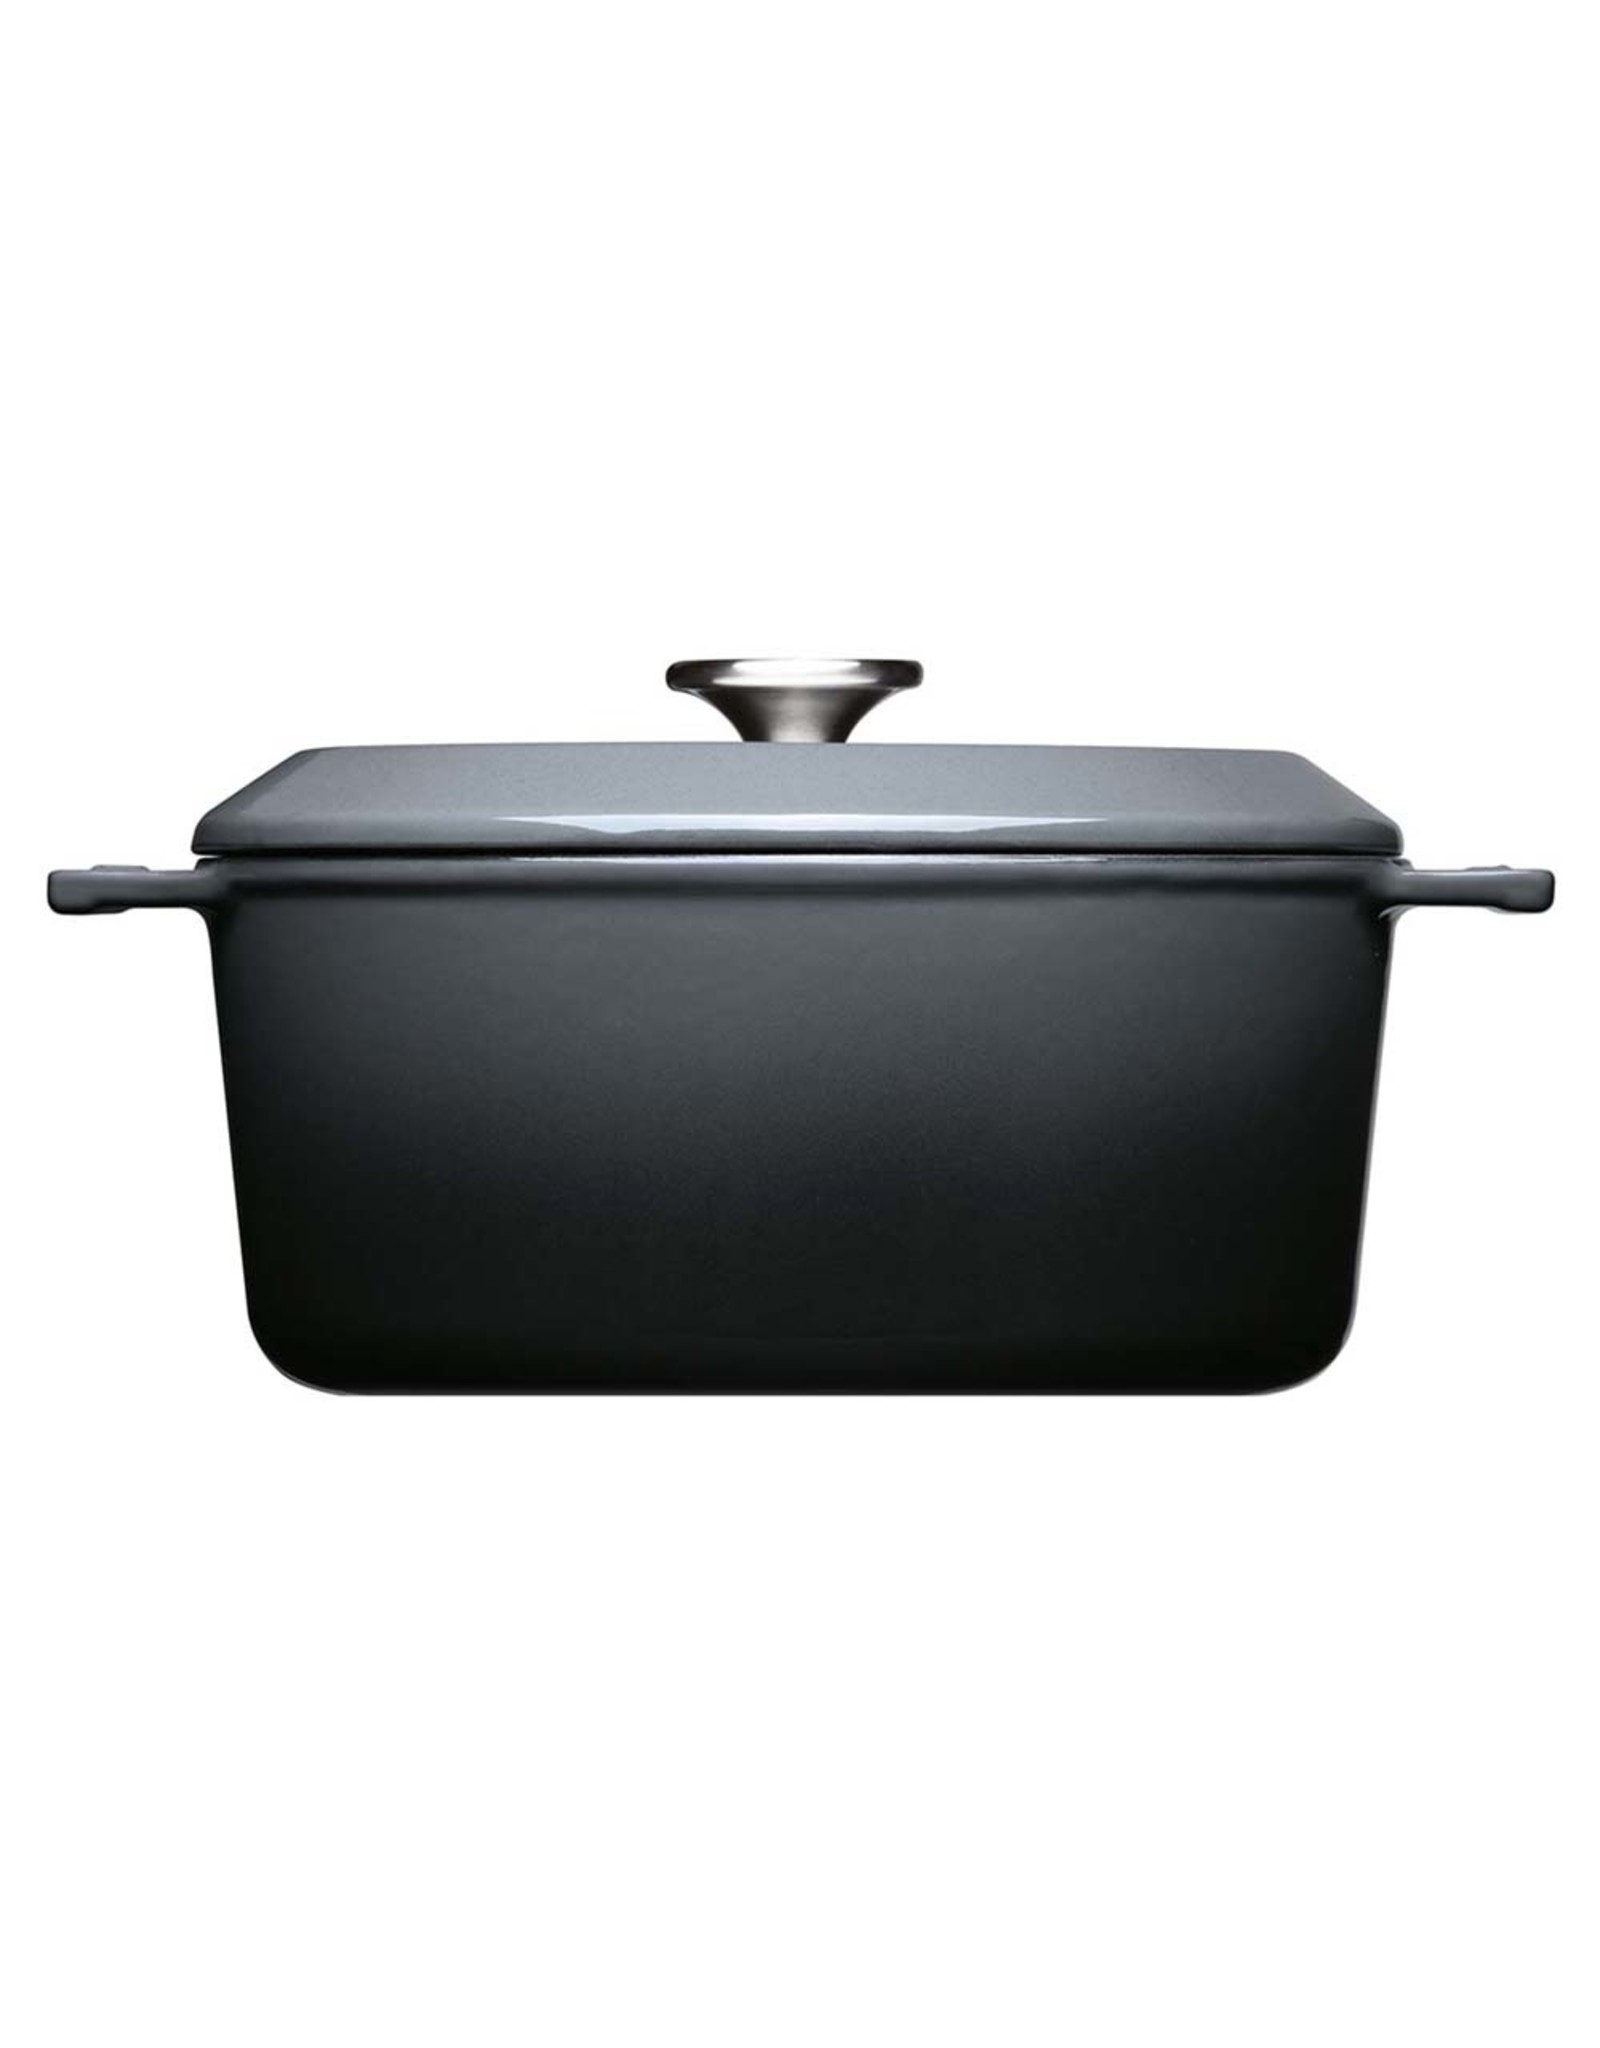 WOLL WOLL 124CI-030 IRON CASSEROLES 4.2 LTR  ROND  24X11CM CARBON GREY